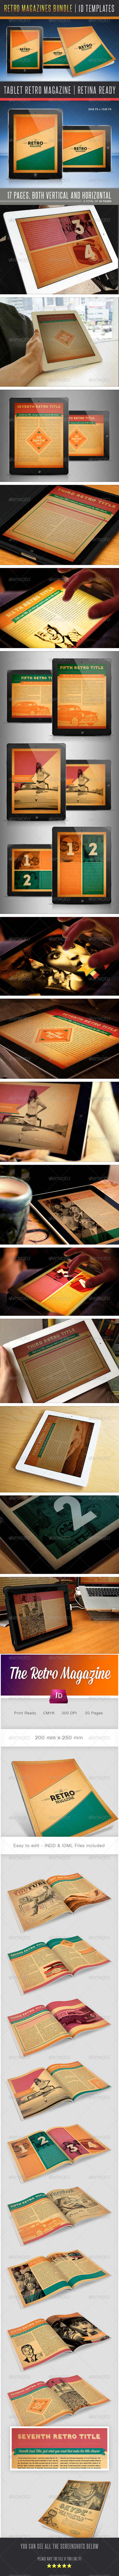 GraphicRiver The Retro MGZ Print & Digital 5367981